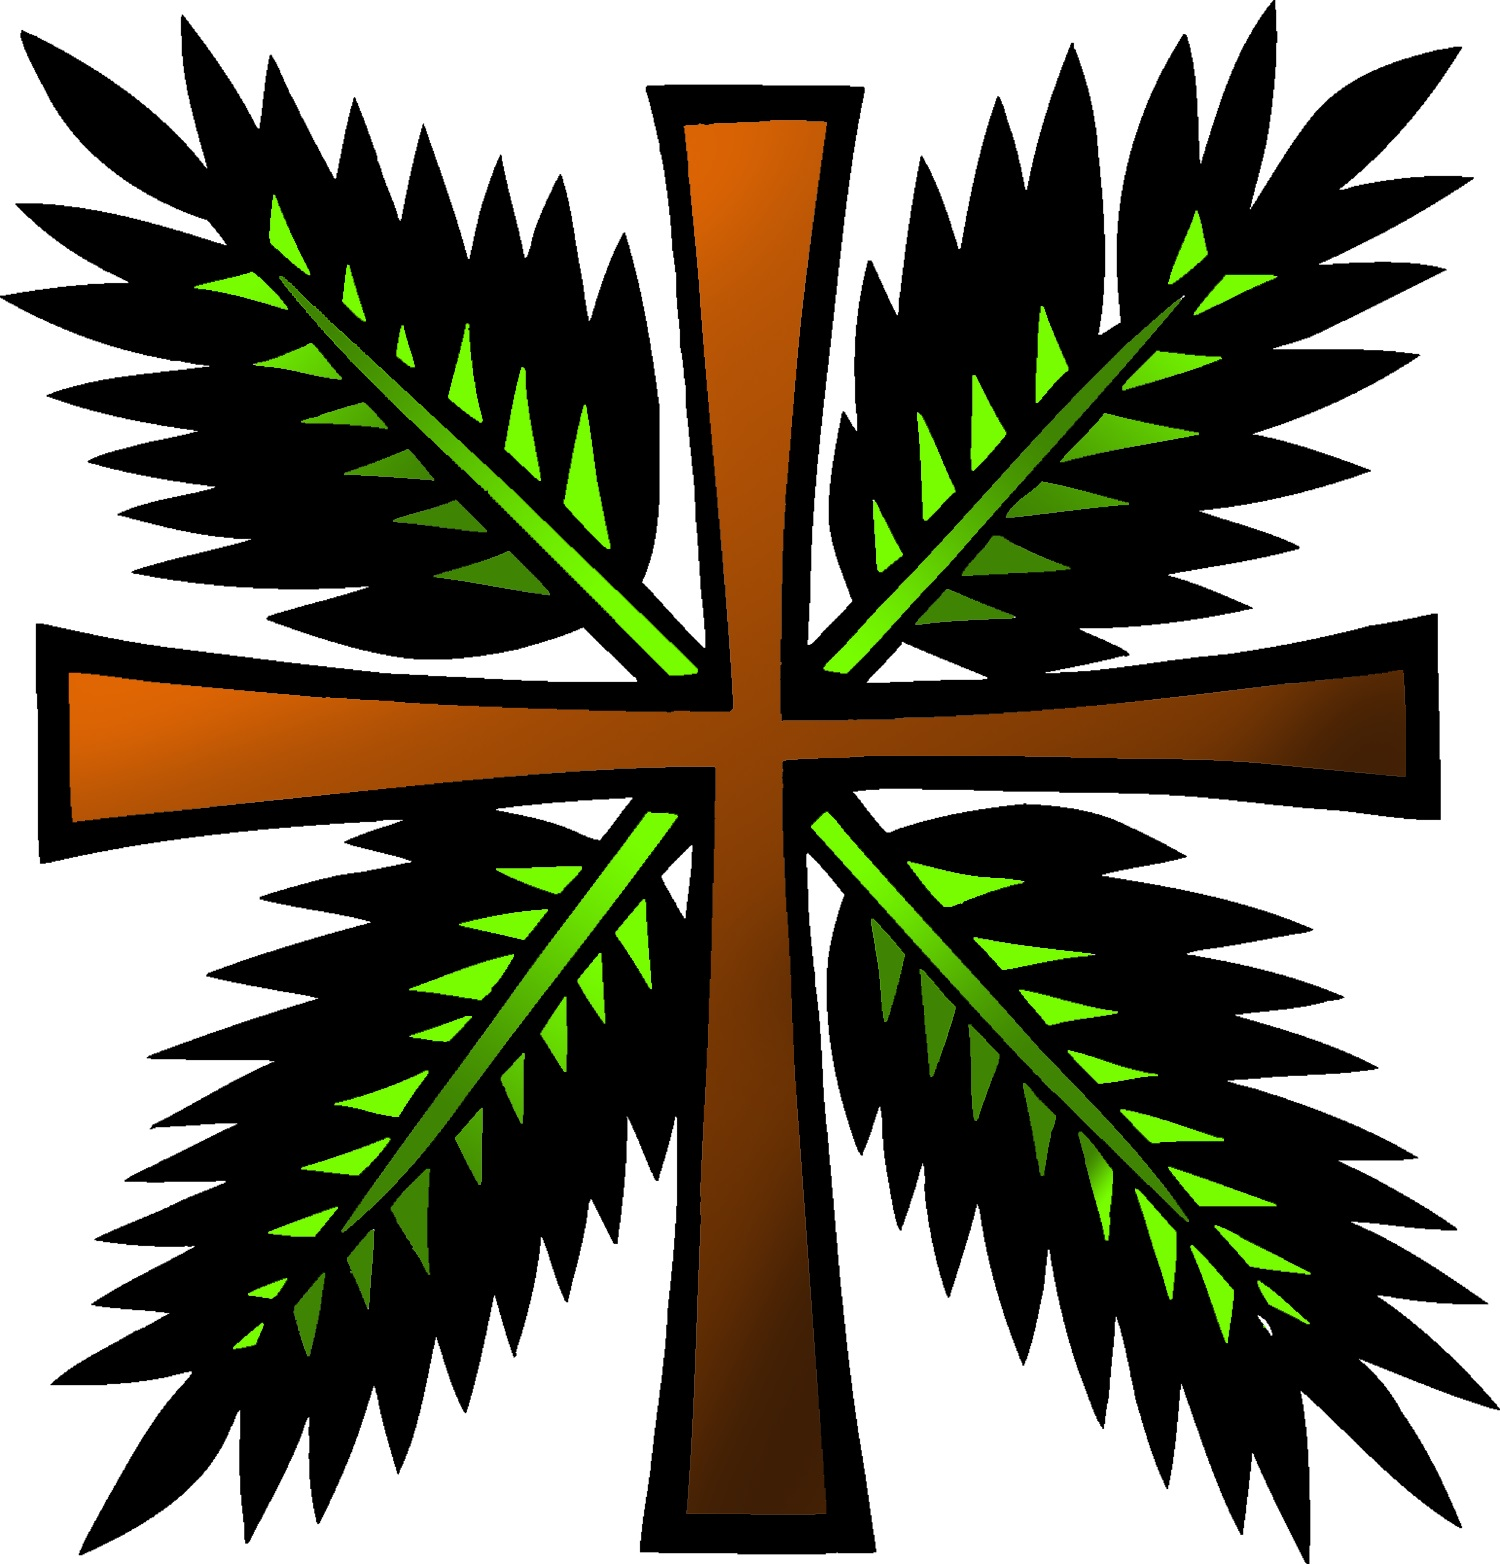 Sunday clipart palmpassion. Bulletin palm passion trinity